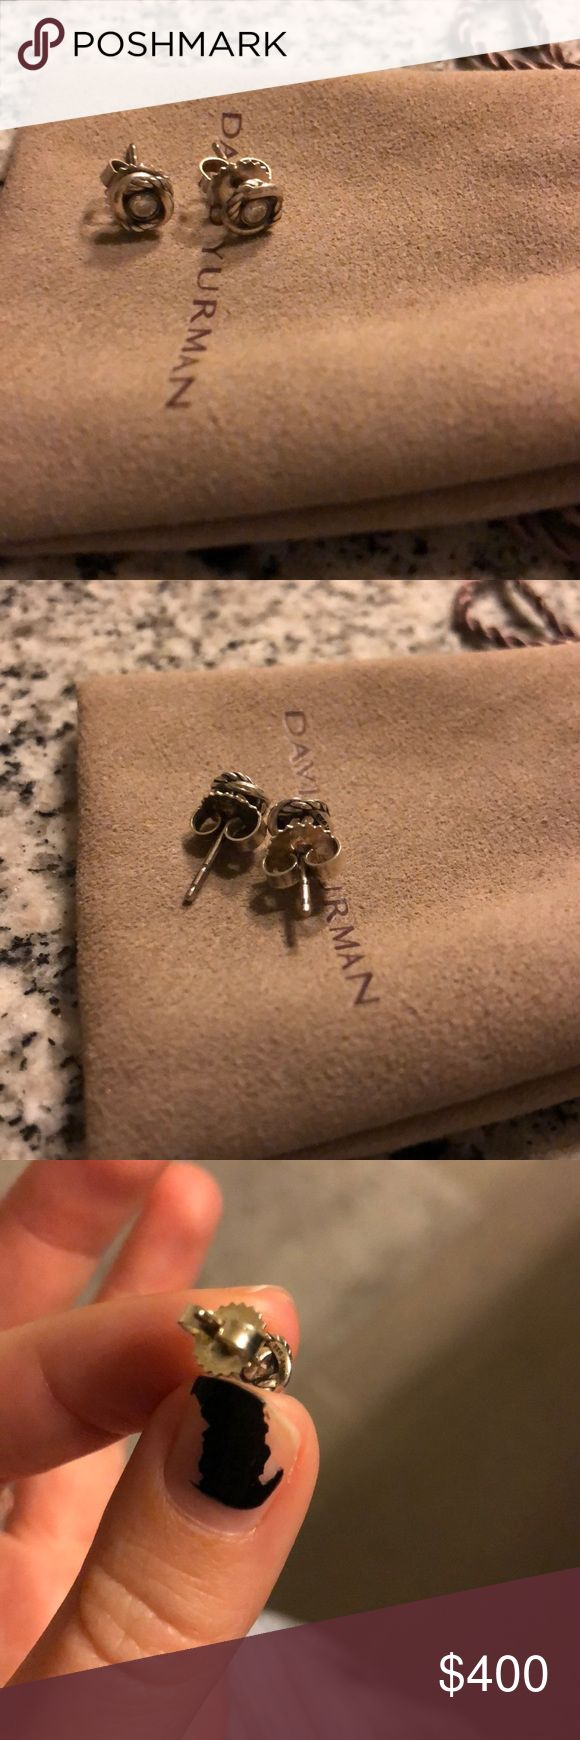 David Yurman Infinity earrings Barely worn but beautiful diamond earrings. Perfect every day studs. Pouch included. Willing to trade for other DY earrings! David Yurman Jewelry Earrings